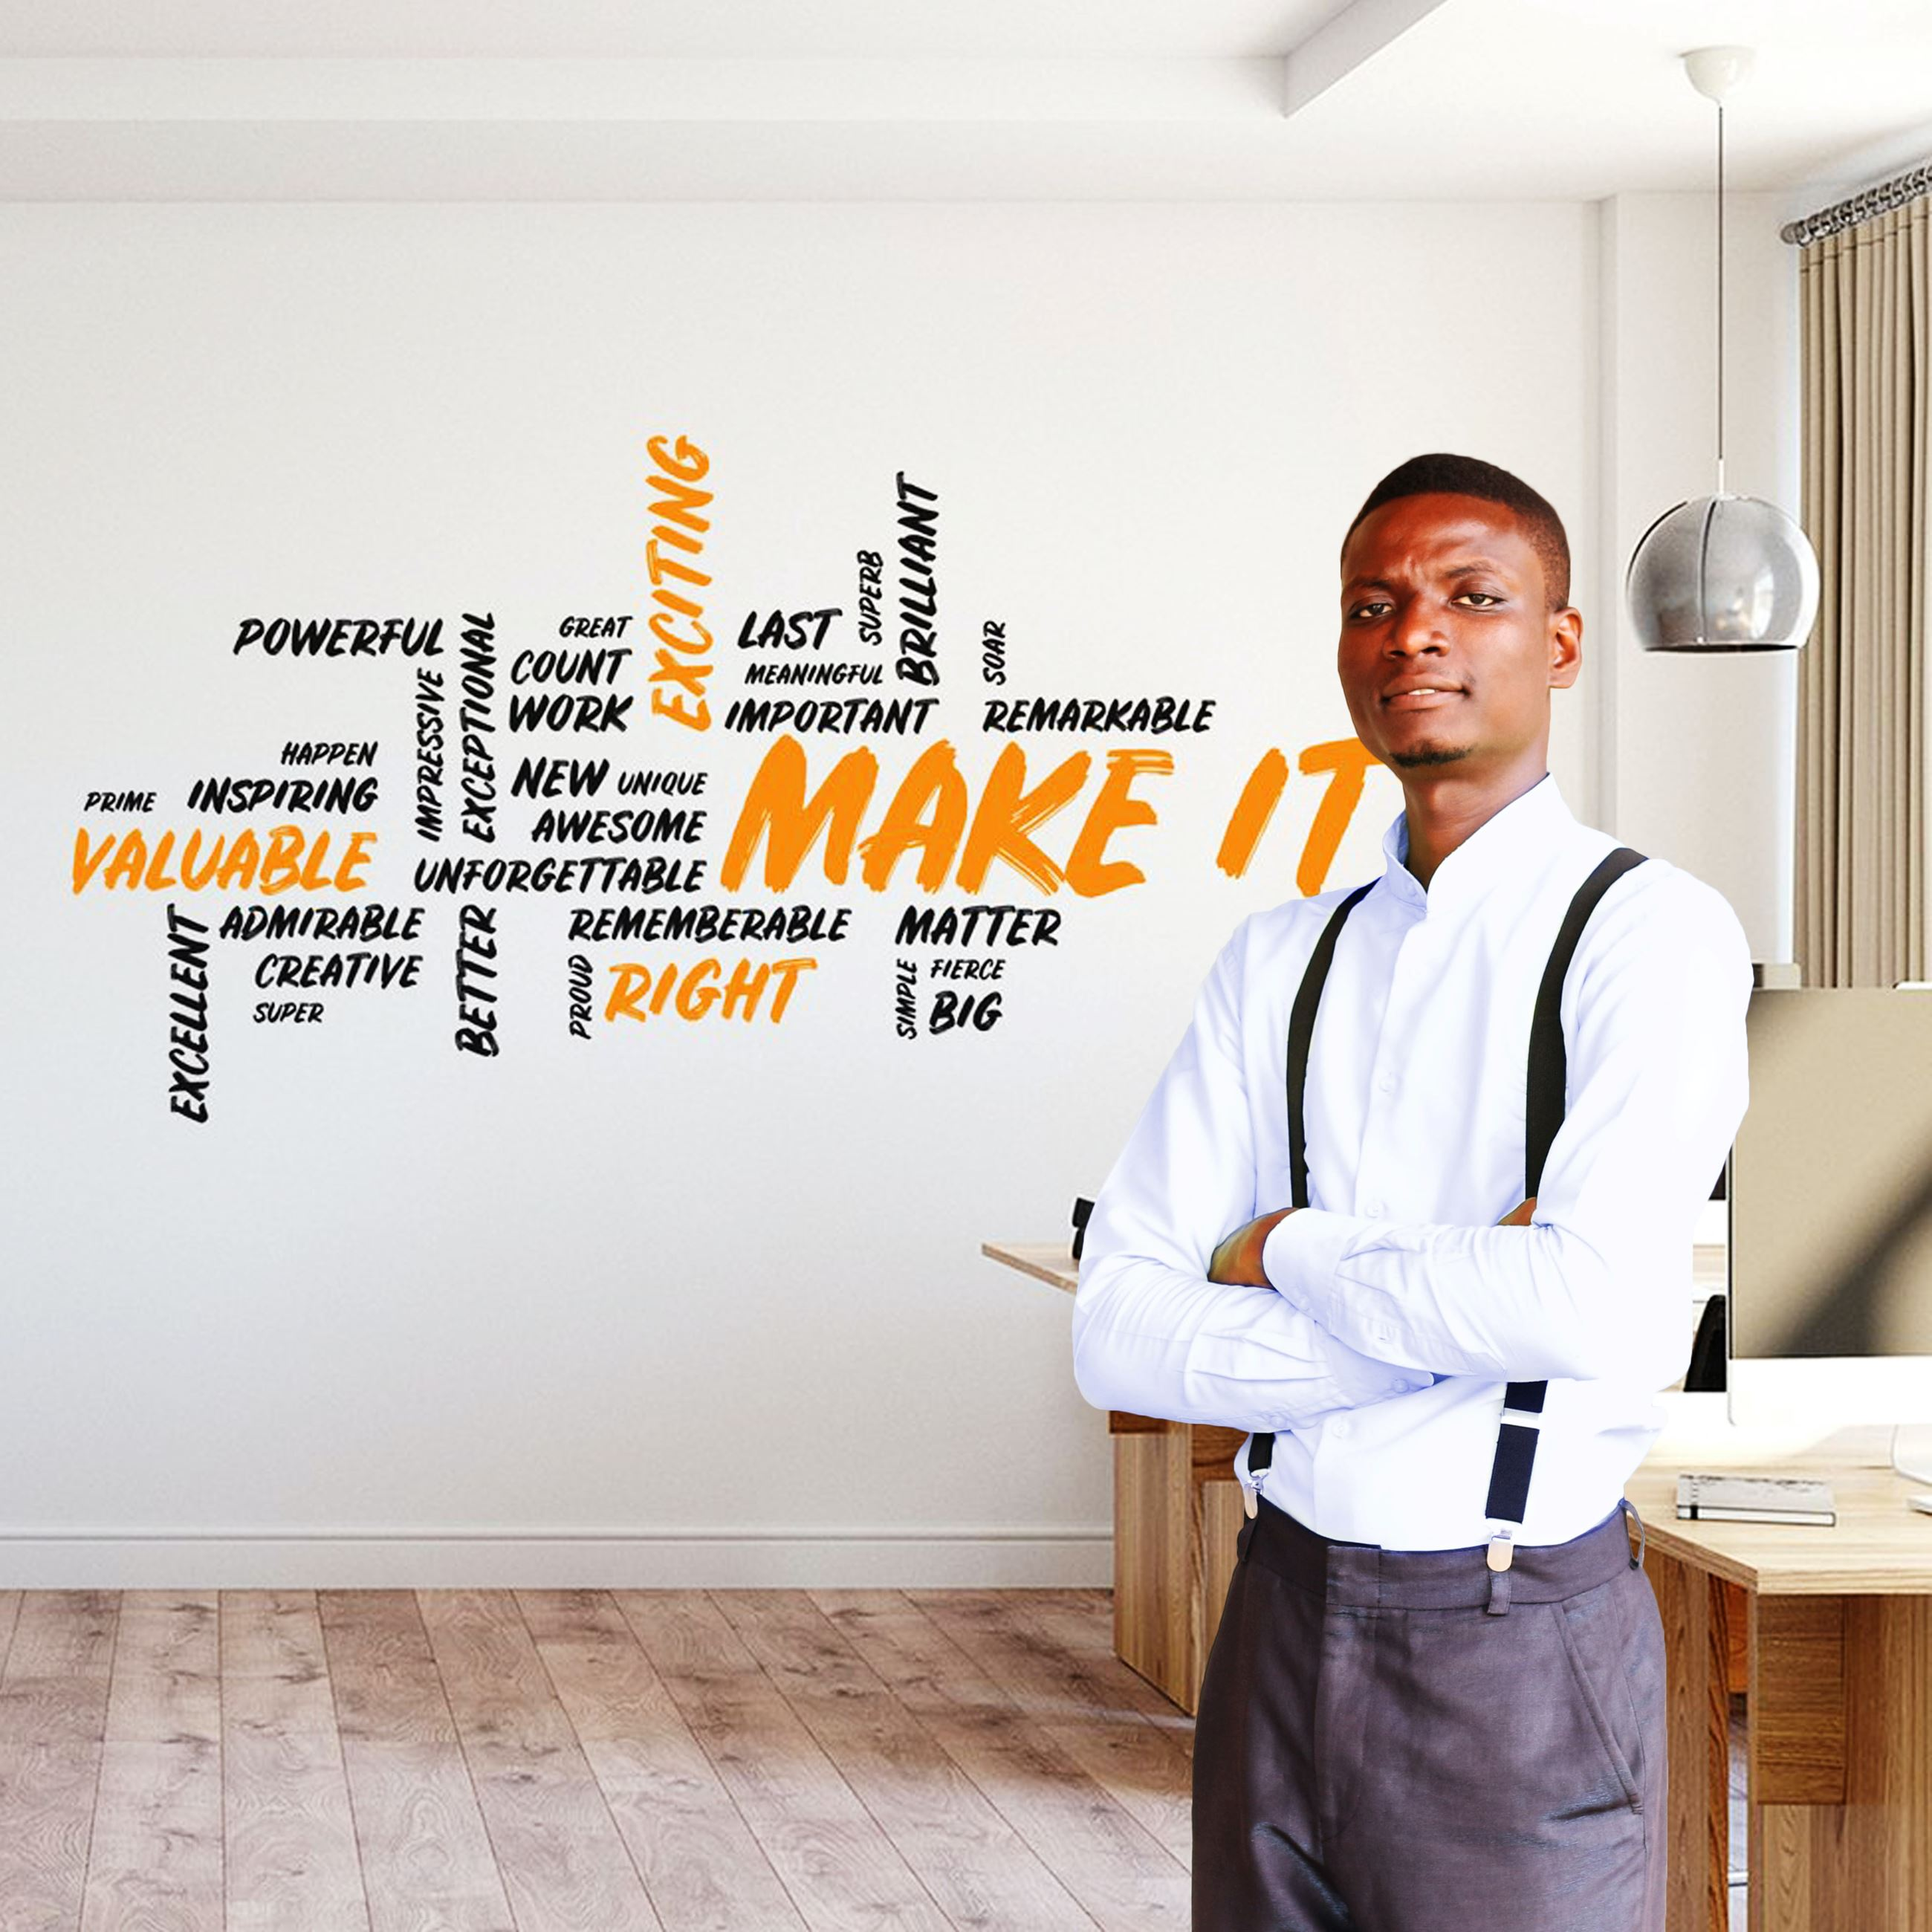 a confident businessman standing in front of motivational quotes